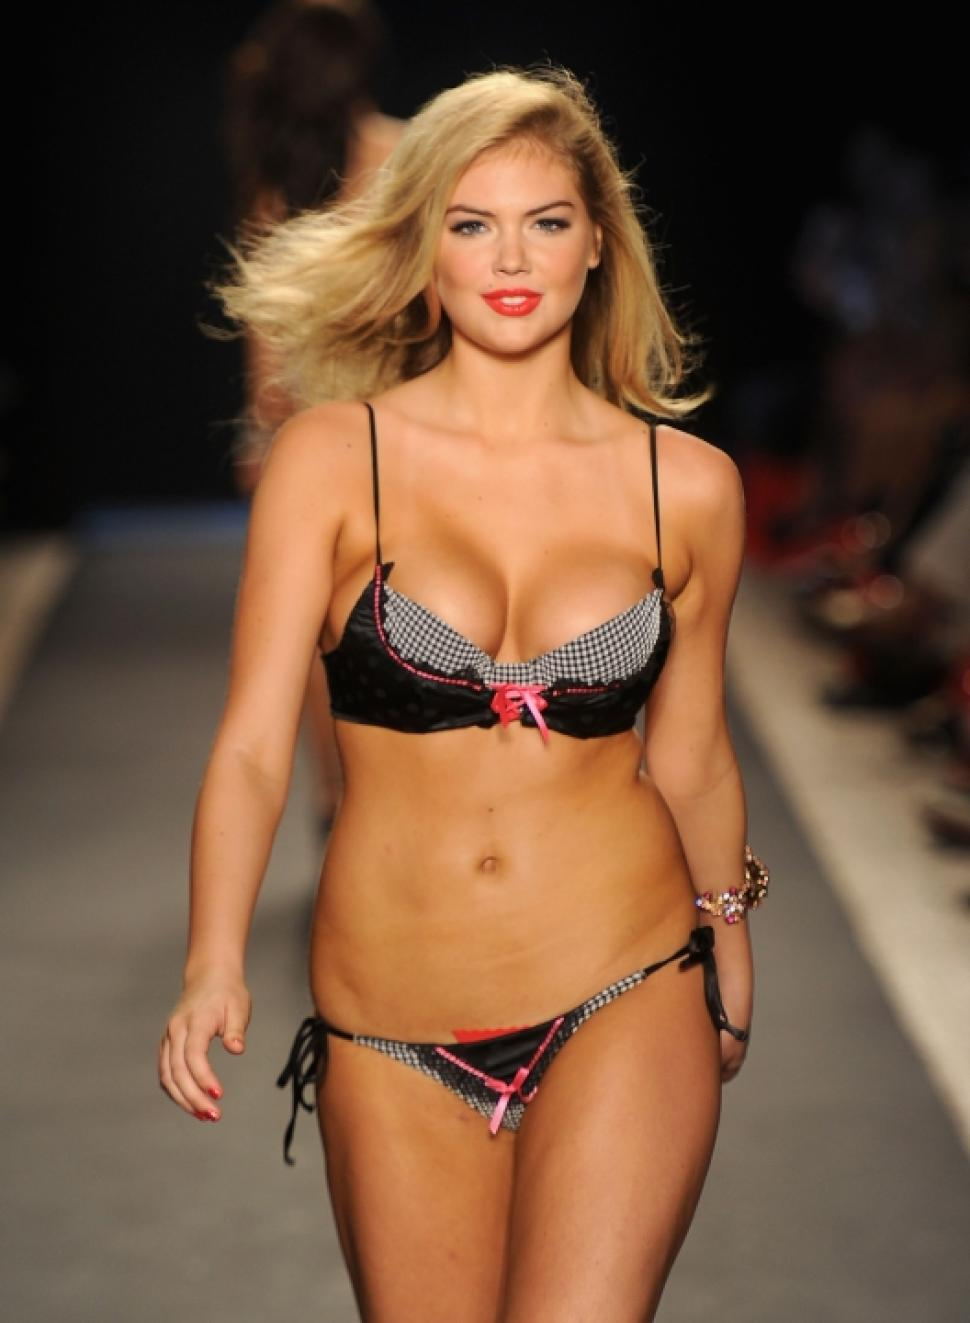 kate-upton-photos